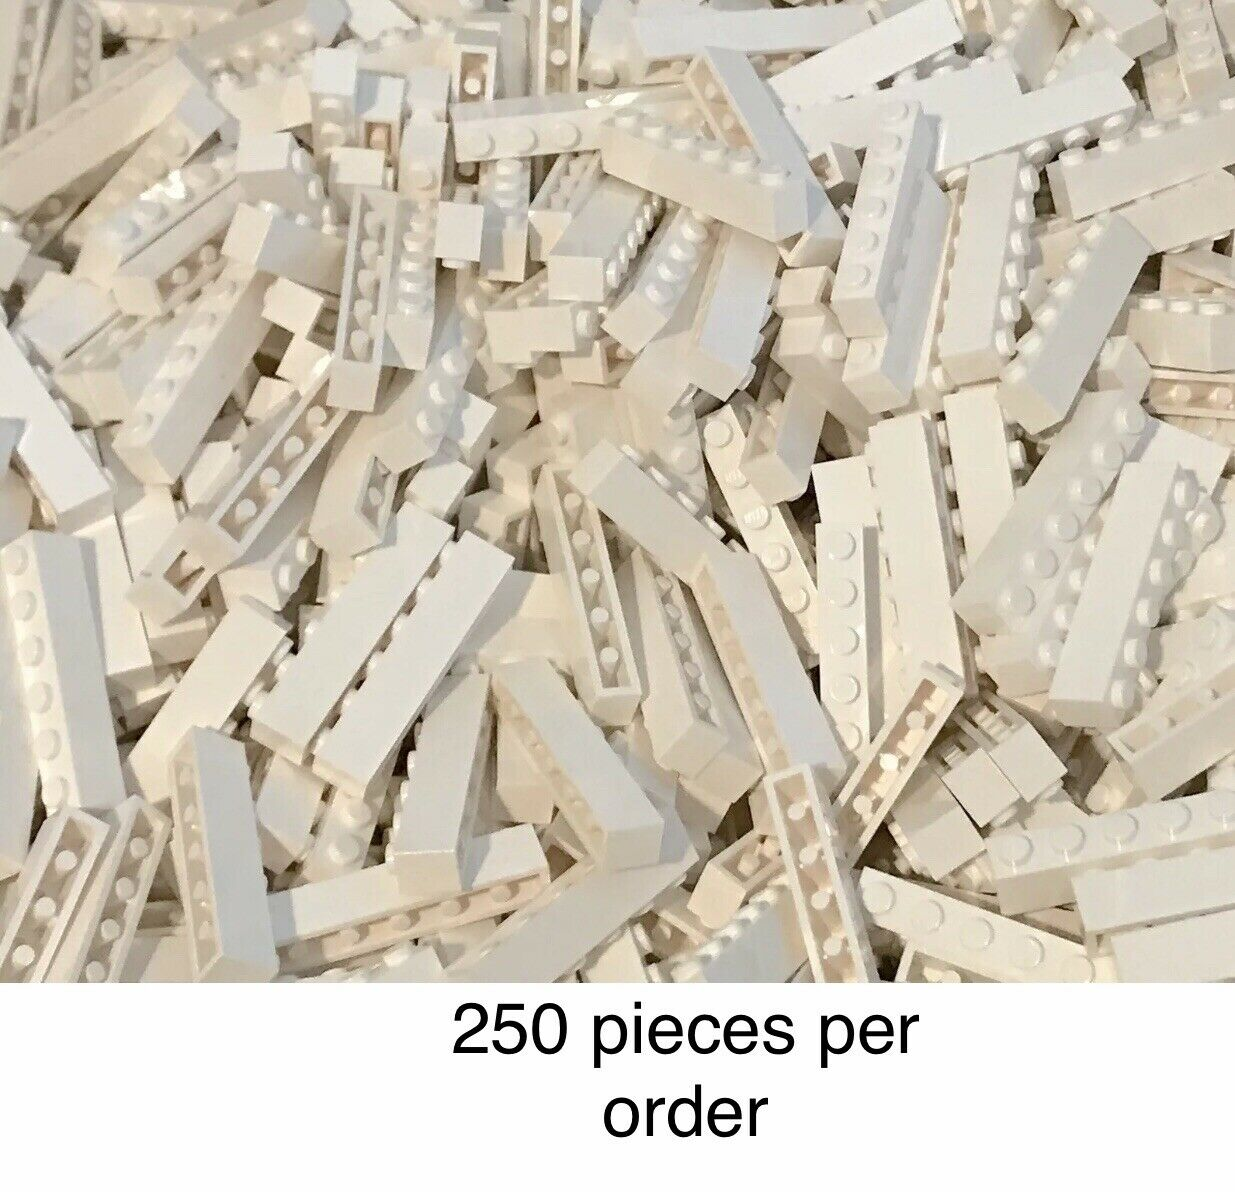 Lego WHITE 1x6 BRICK Lot of 8